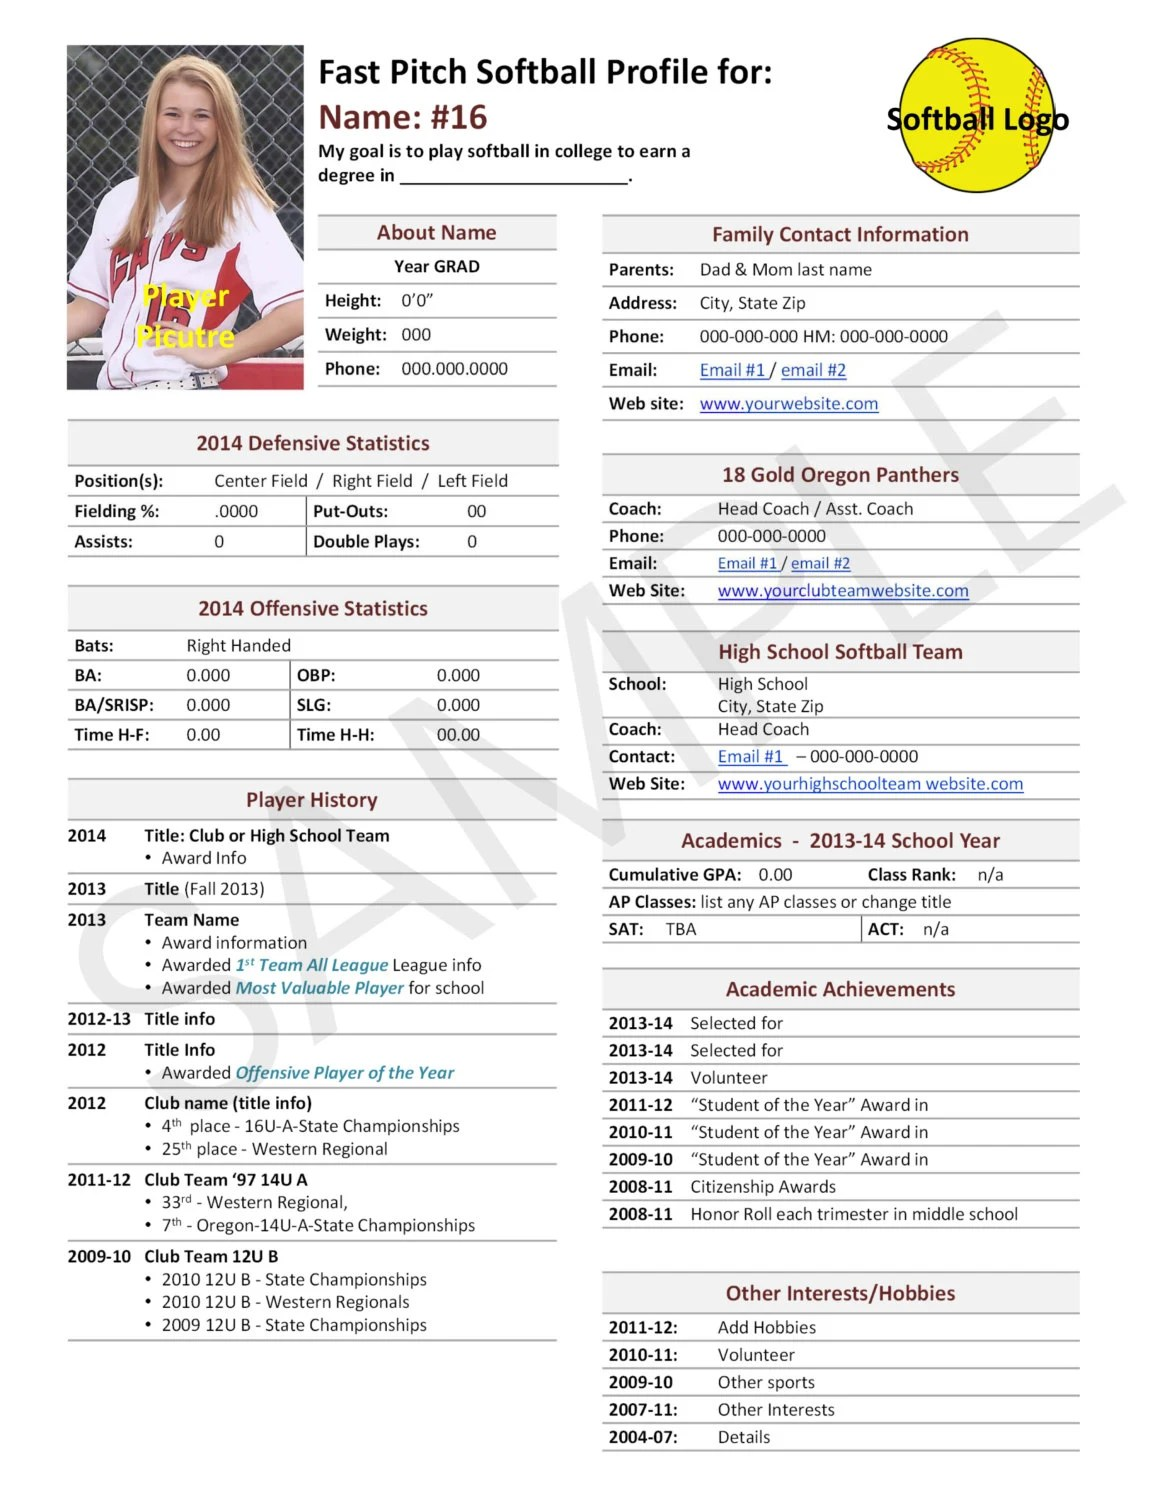 fast pitch softball player profile template used for college